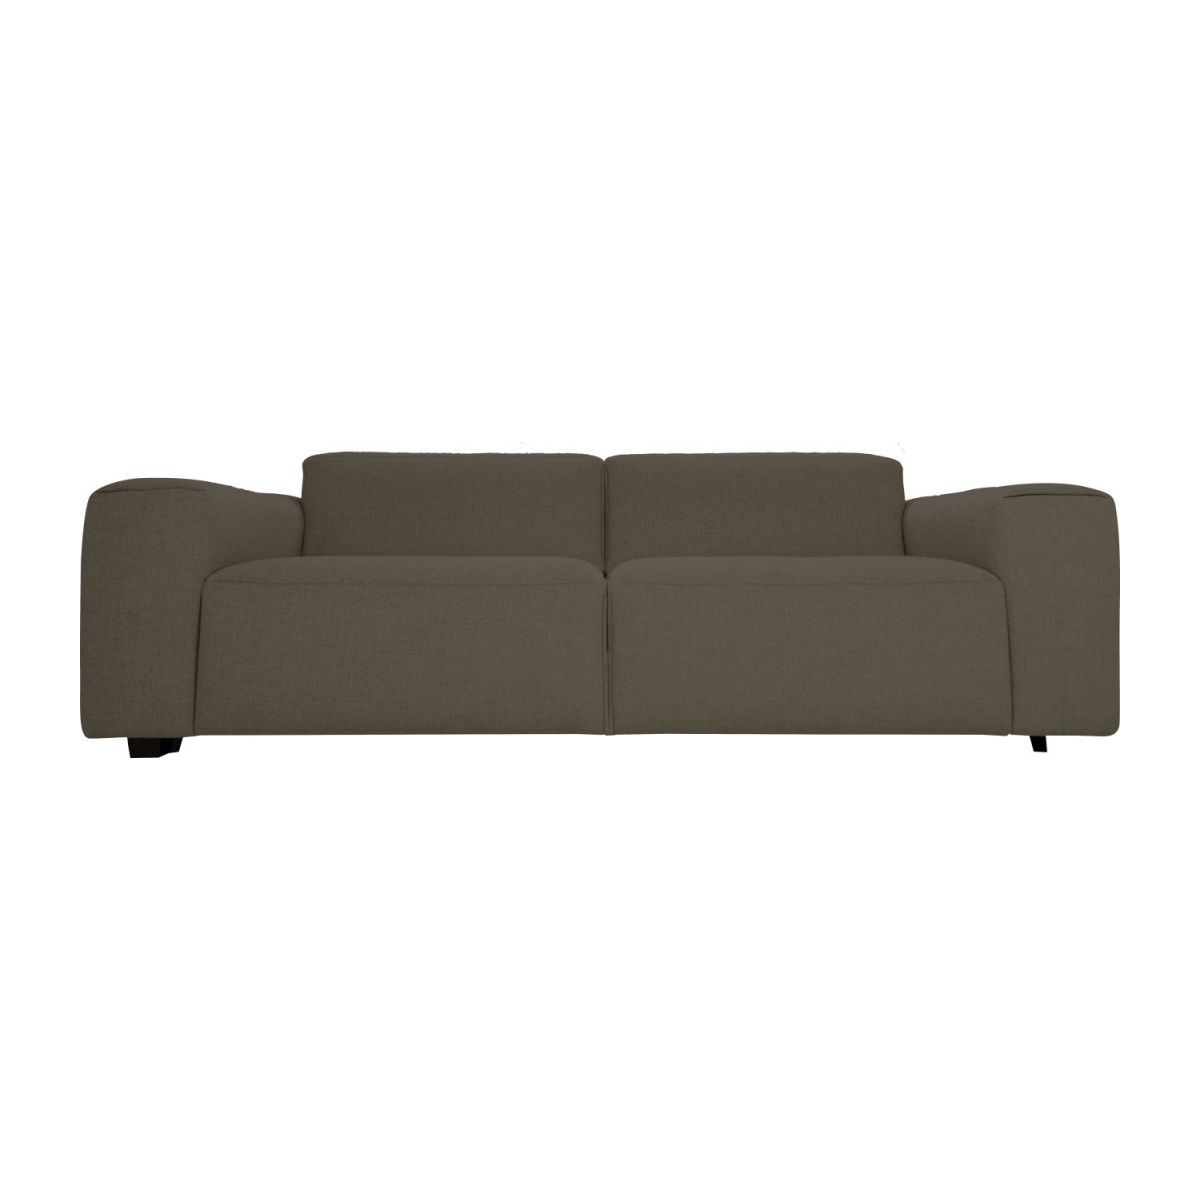 3 seater sofa in Lecce fabric, muscat n°3